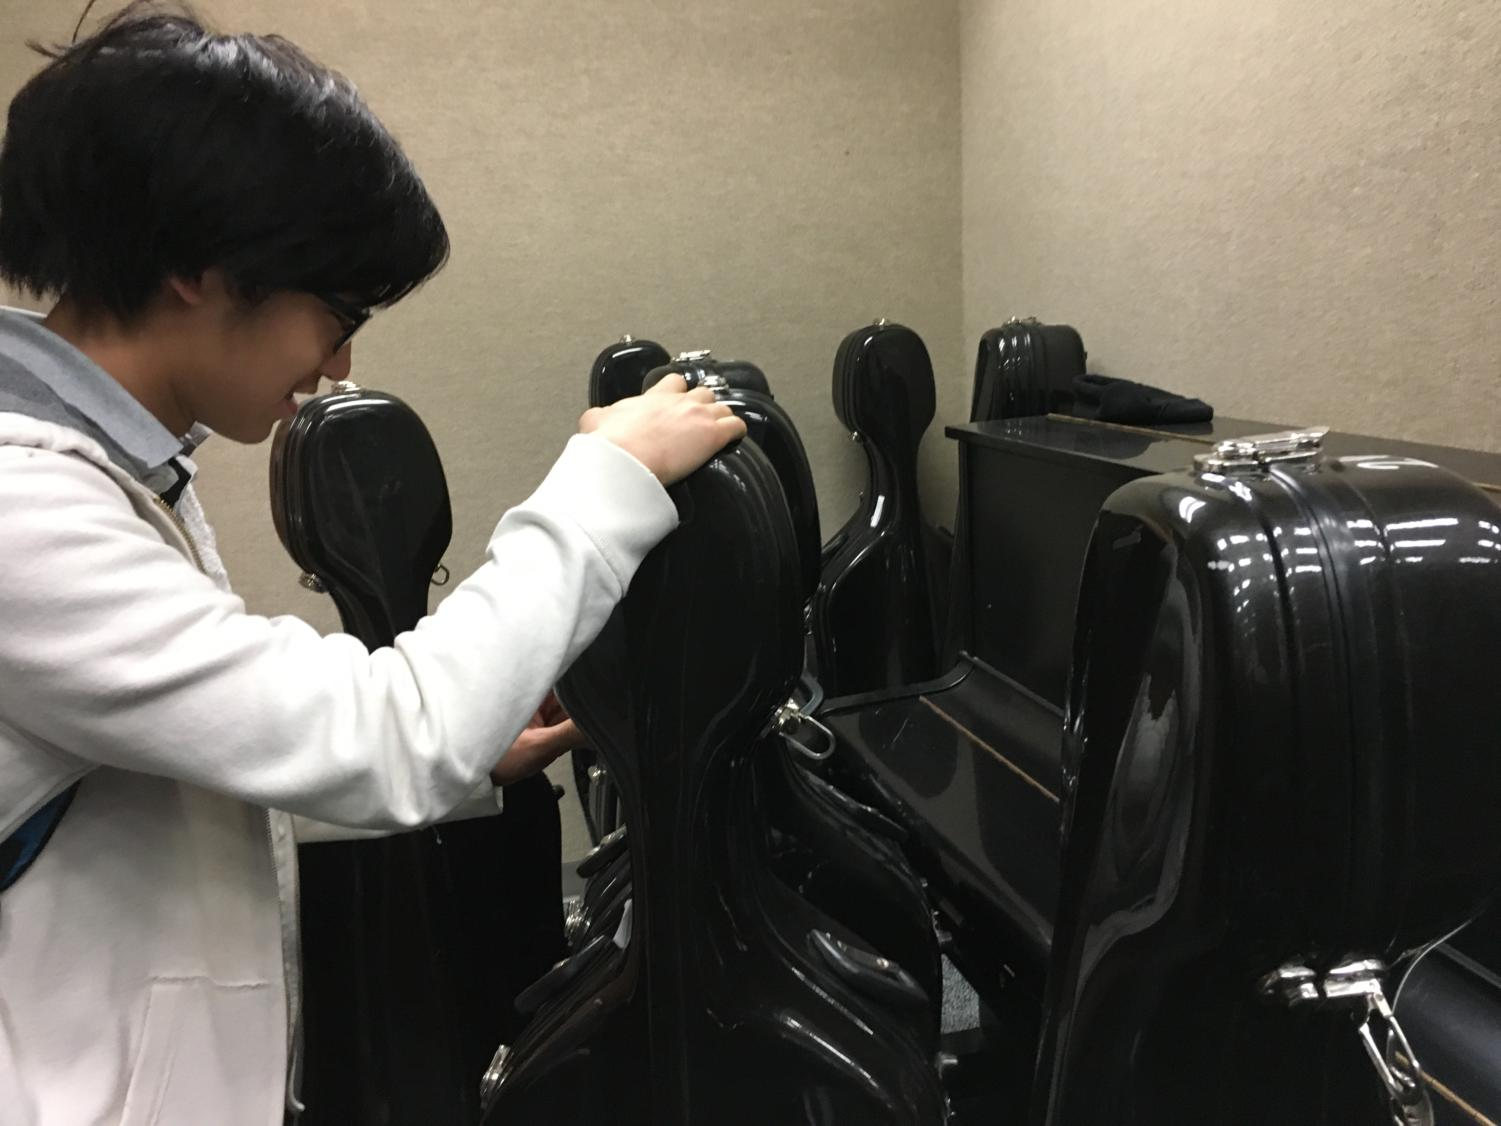 Noah Tan, member of Philharmonic Orchestra and sophomore, takes his cello out of its case before after school rehearsal. He said the main focus of his orchestra class for the past few weeks has been to prepare their chamber music and contest music.